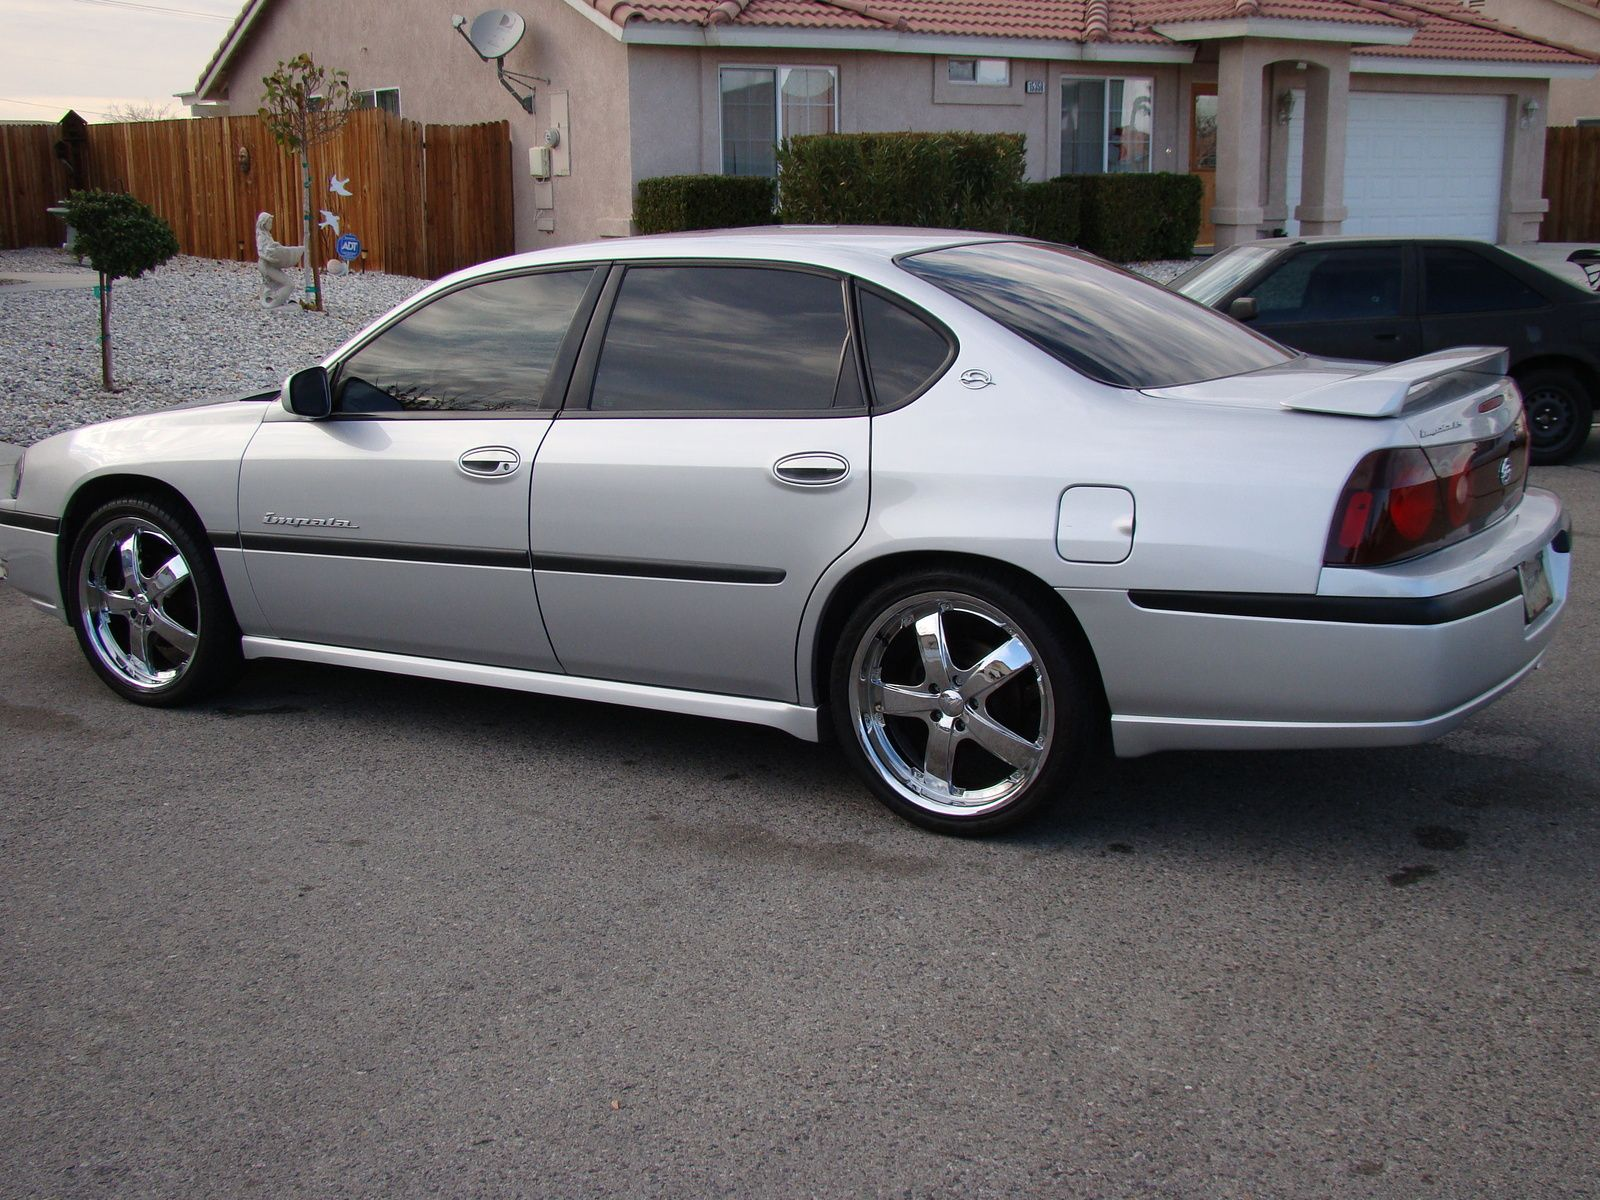 medium resolution of love this car 2000 chevrolet impala ls for fuel efficiency with 2000 chevrolet impala ls this is the car you want